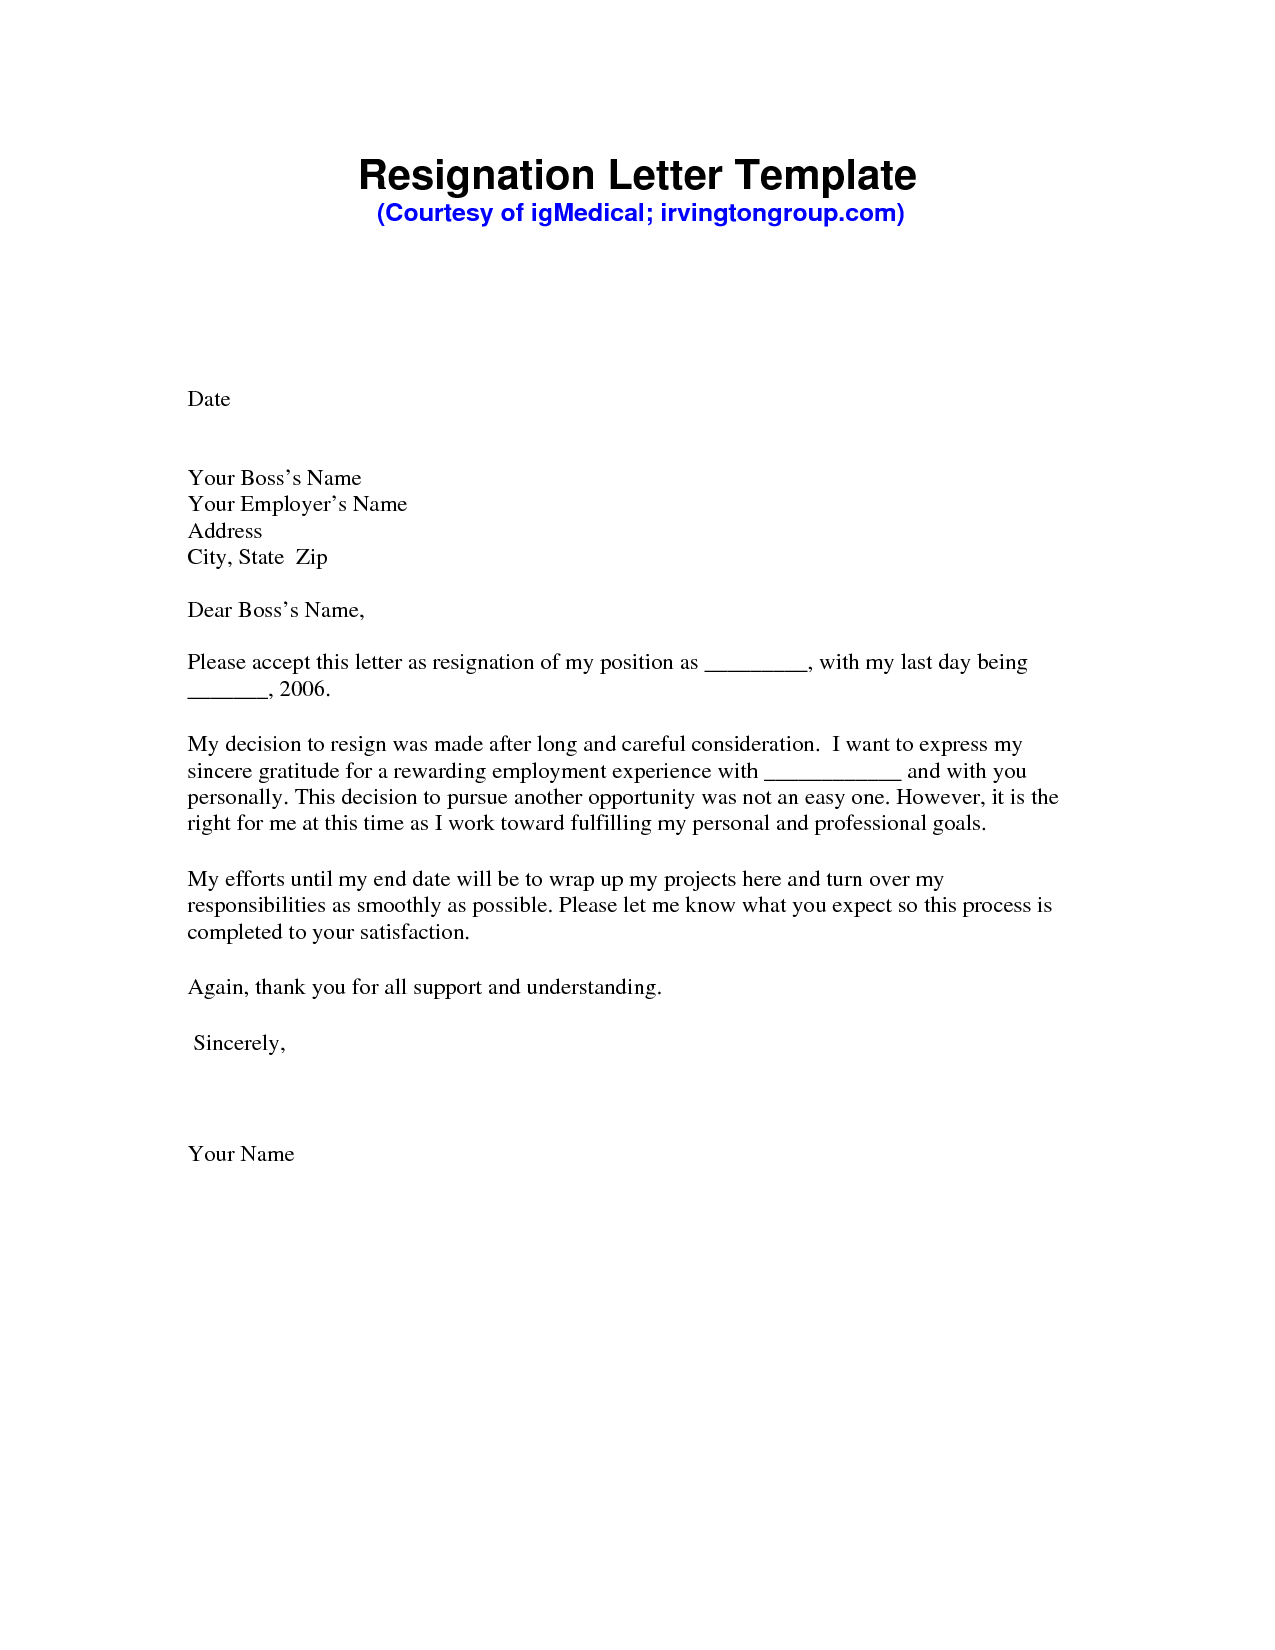 Standard Resignation Letter Template Word - Resignation Letter Sample Pdf Resignation Letter